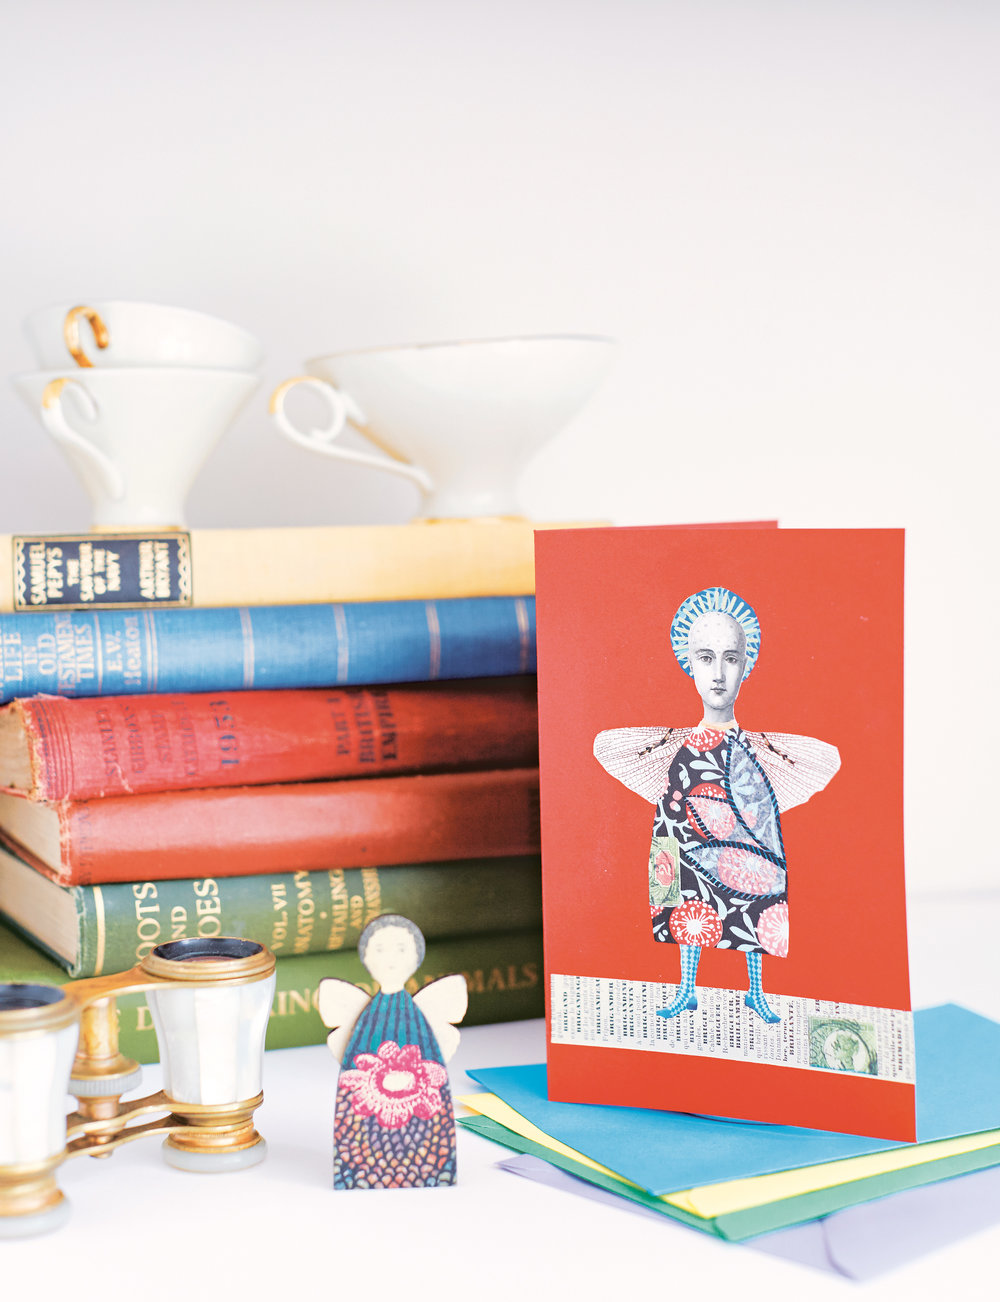 Cards by Gabriela Szulman image by Kristy Noble   House of Cards  by Sarah Hamilton is published by Pavilion.  Find them on Instagram at -  @pavilionbooks @hoc.cardbook @justacard @sarahhamiltonprints @jehanebodenspiers_